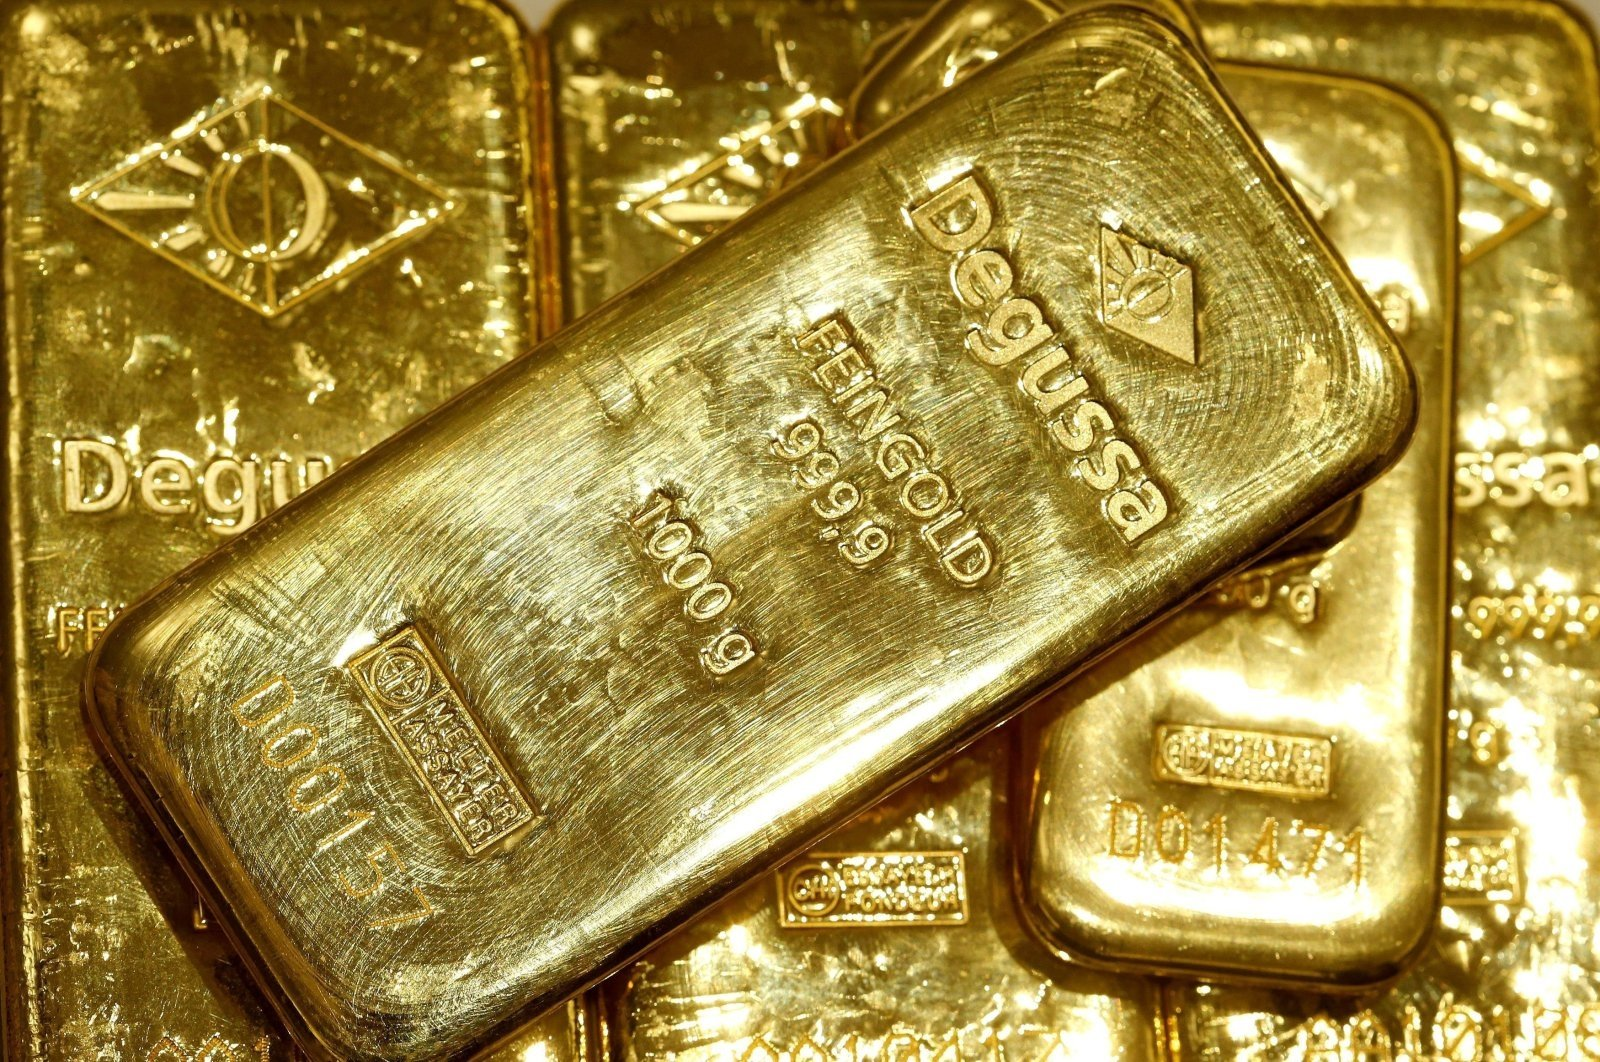 Gold bars in the vault of the branch office of precious metal trader Degussa in Zurich, Switzerland, April 19, 2013. (Reuters Photo)